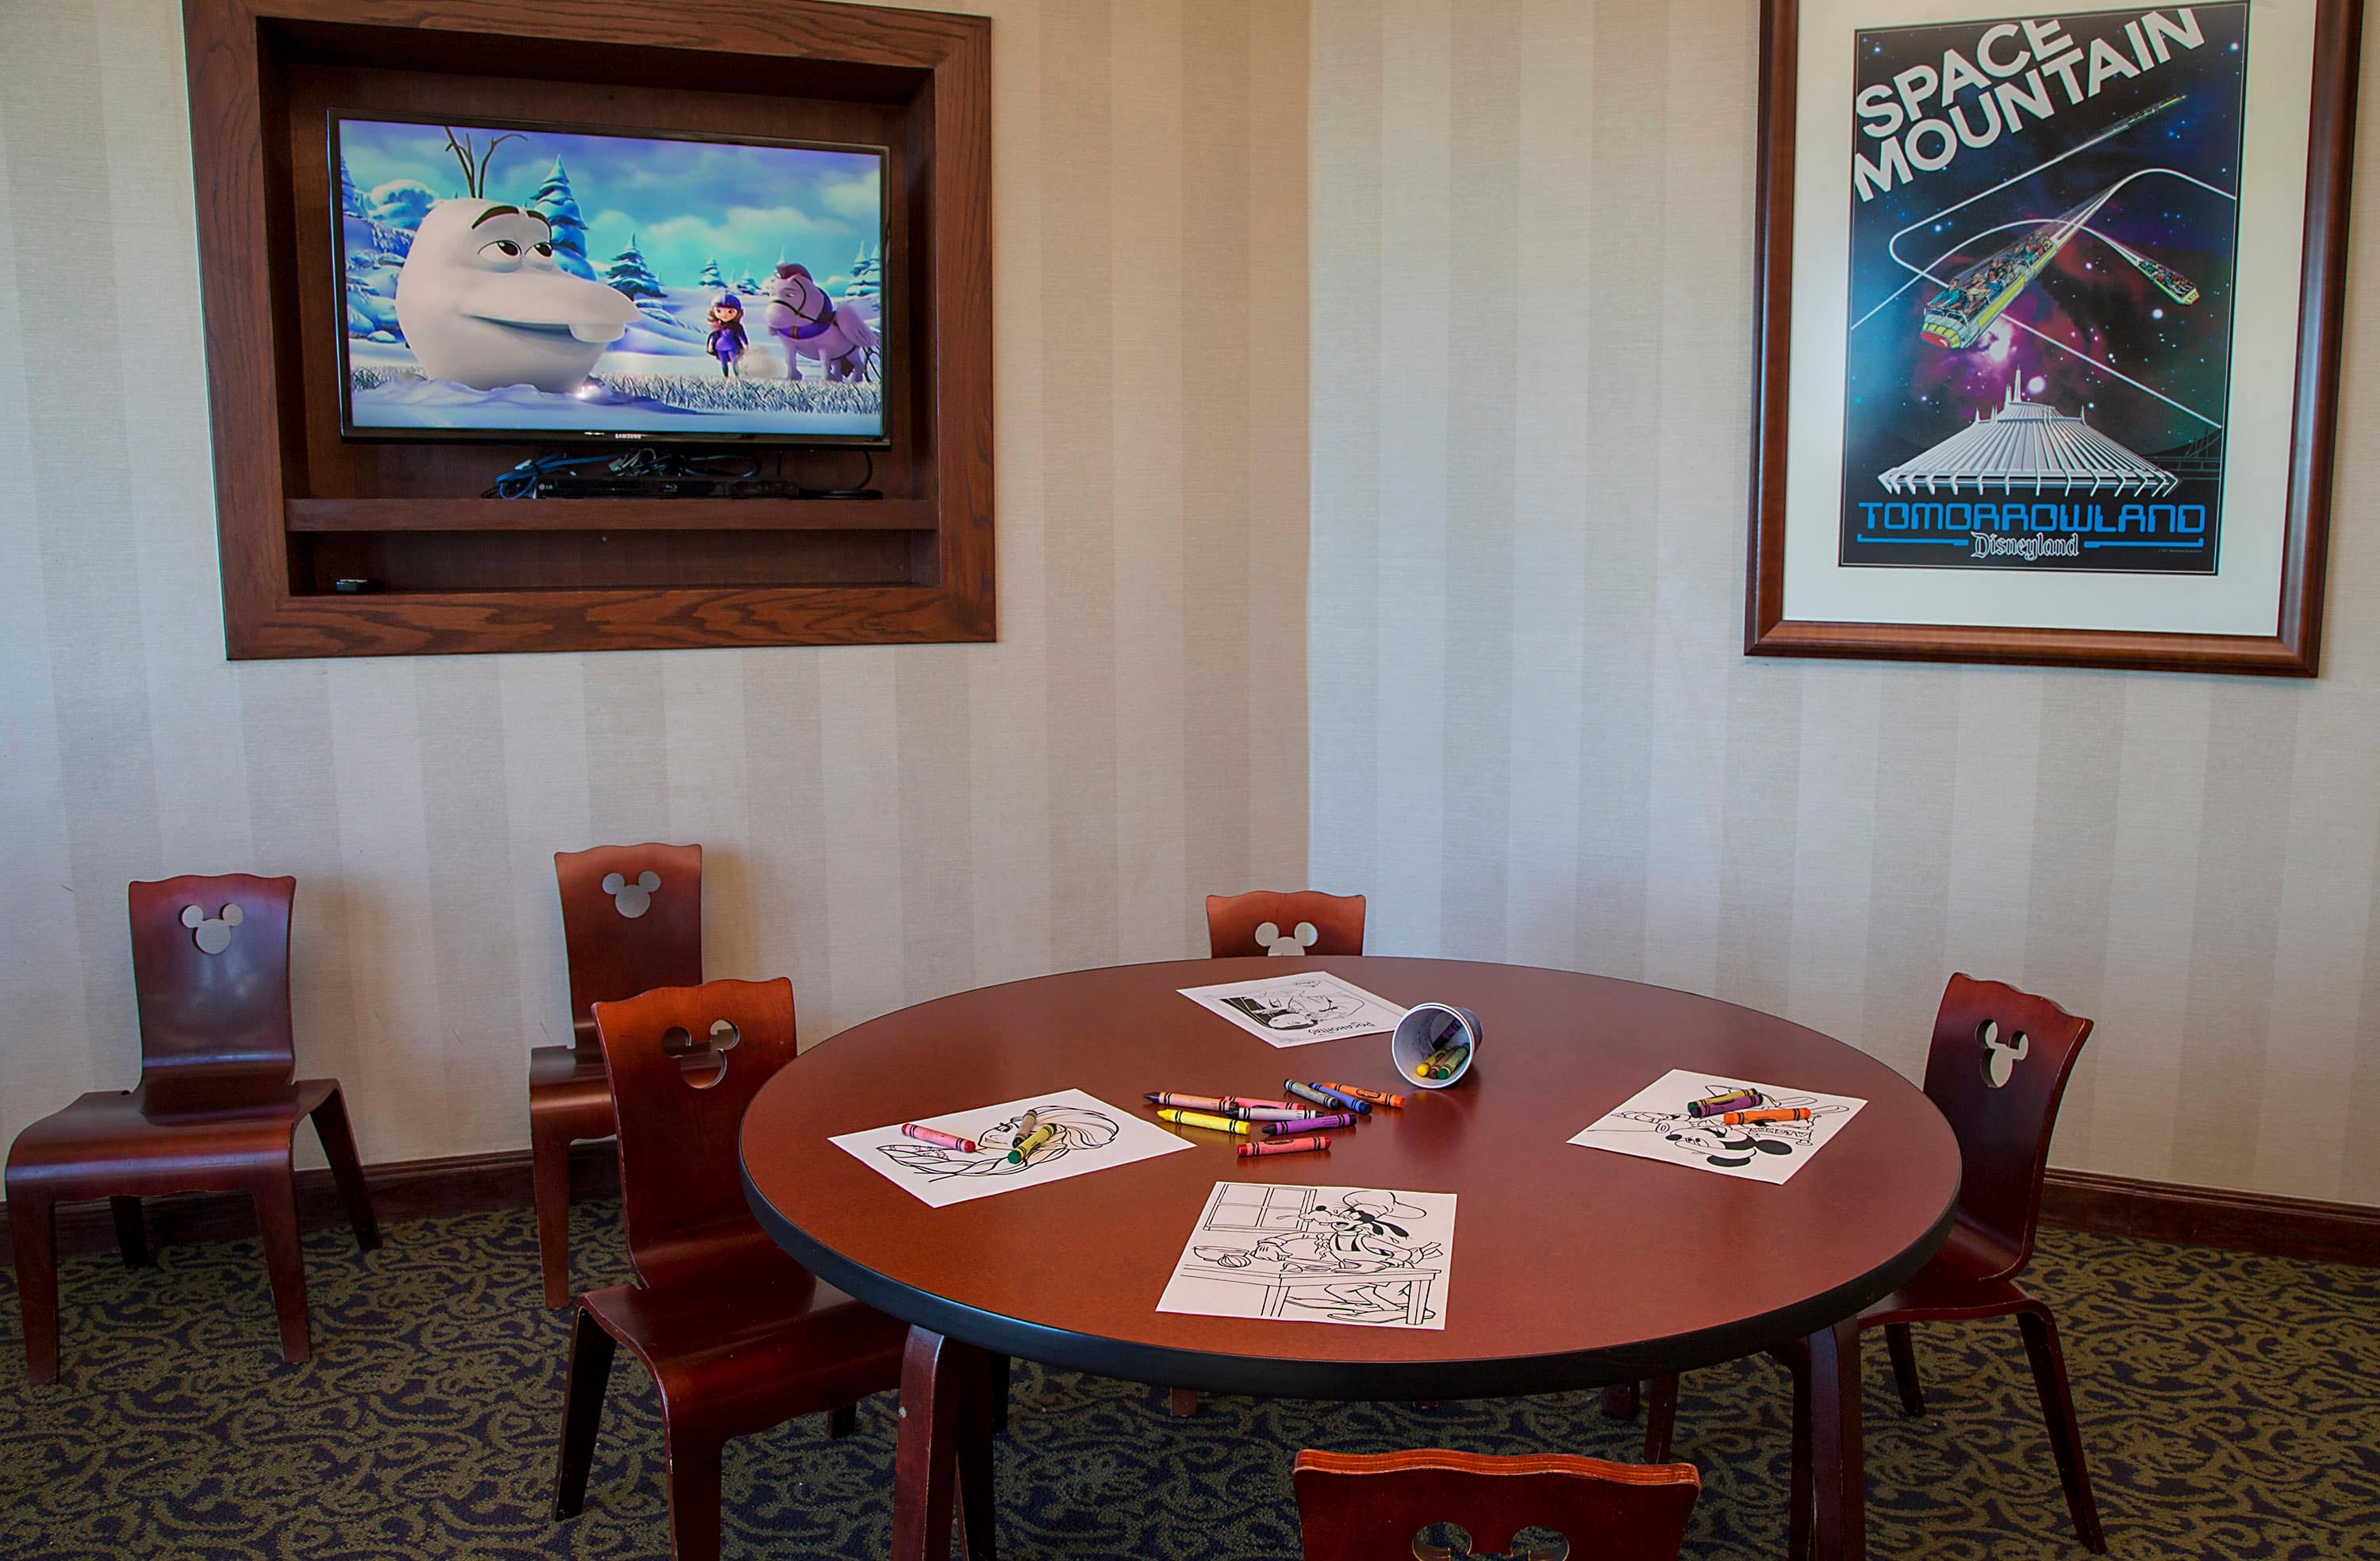 Club-Level Service at the Disneyland Hotel